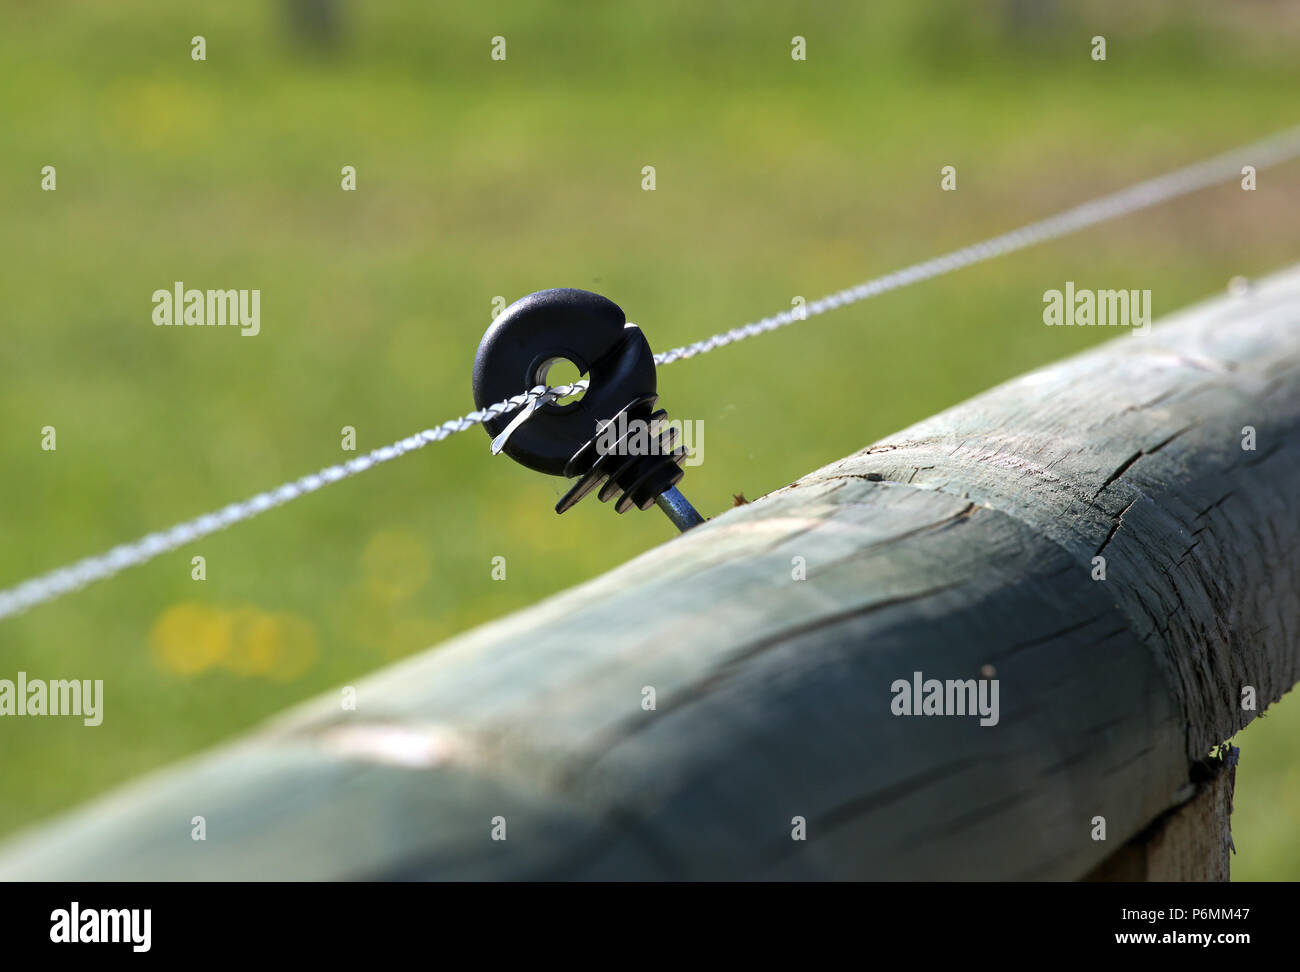 Gestuet Graditz, electric fence secured coupling fence - Stock Image